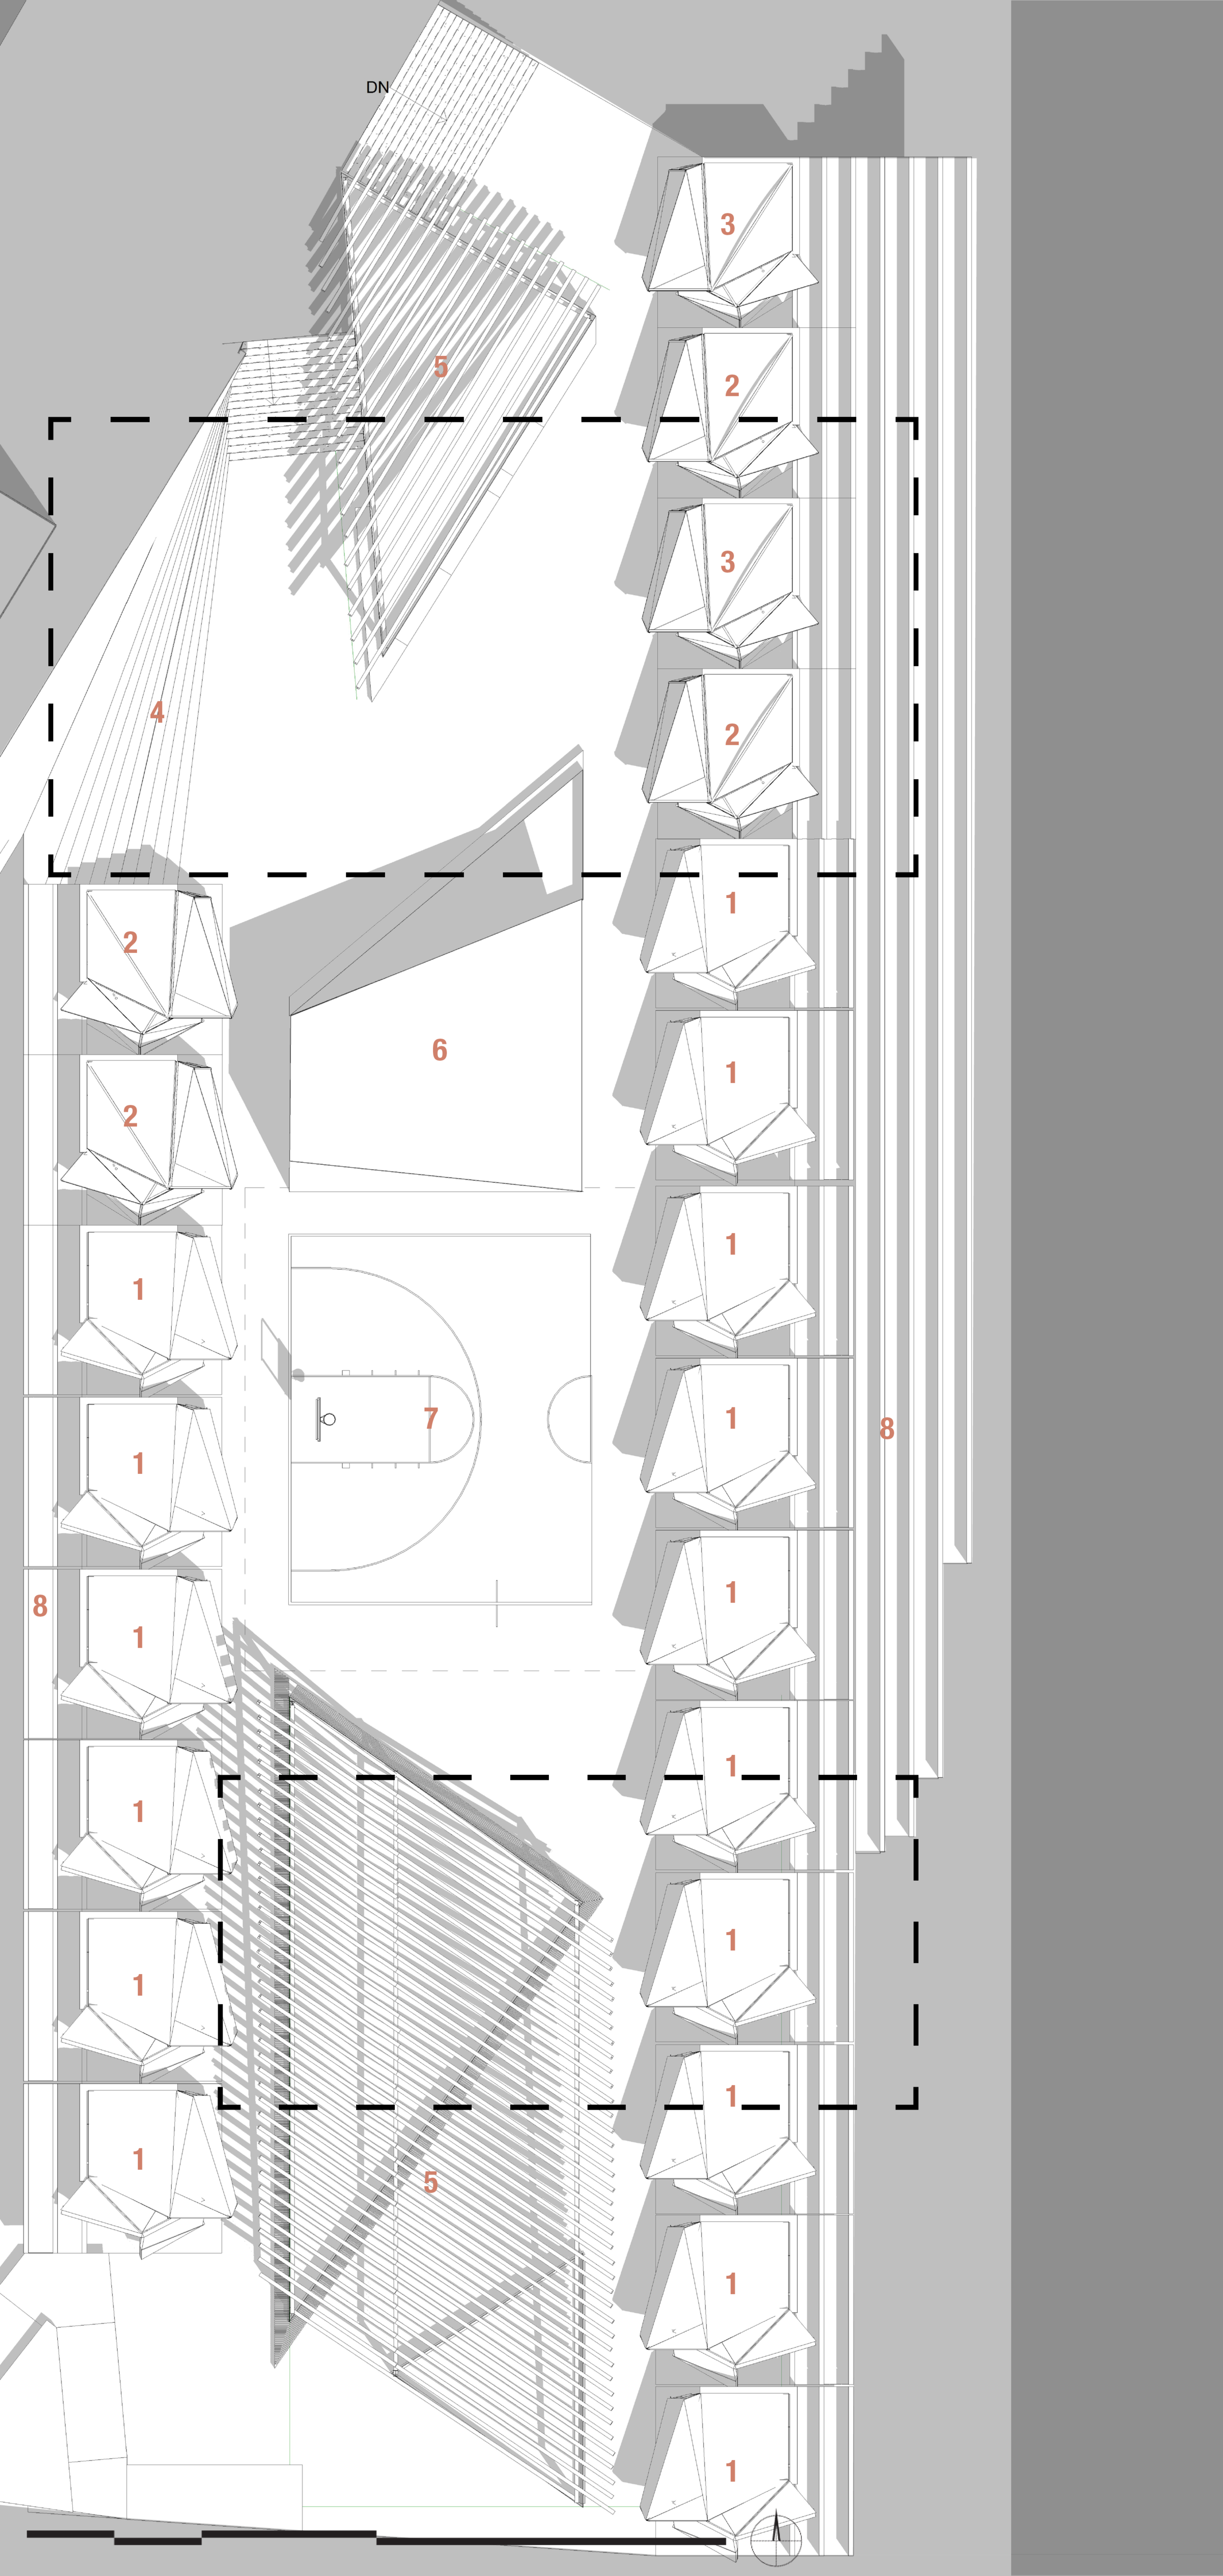 SITE - AREA PLAN.png